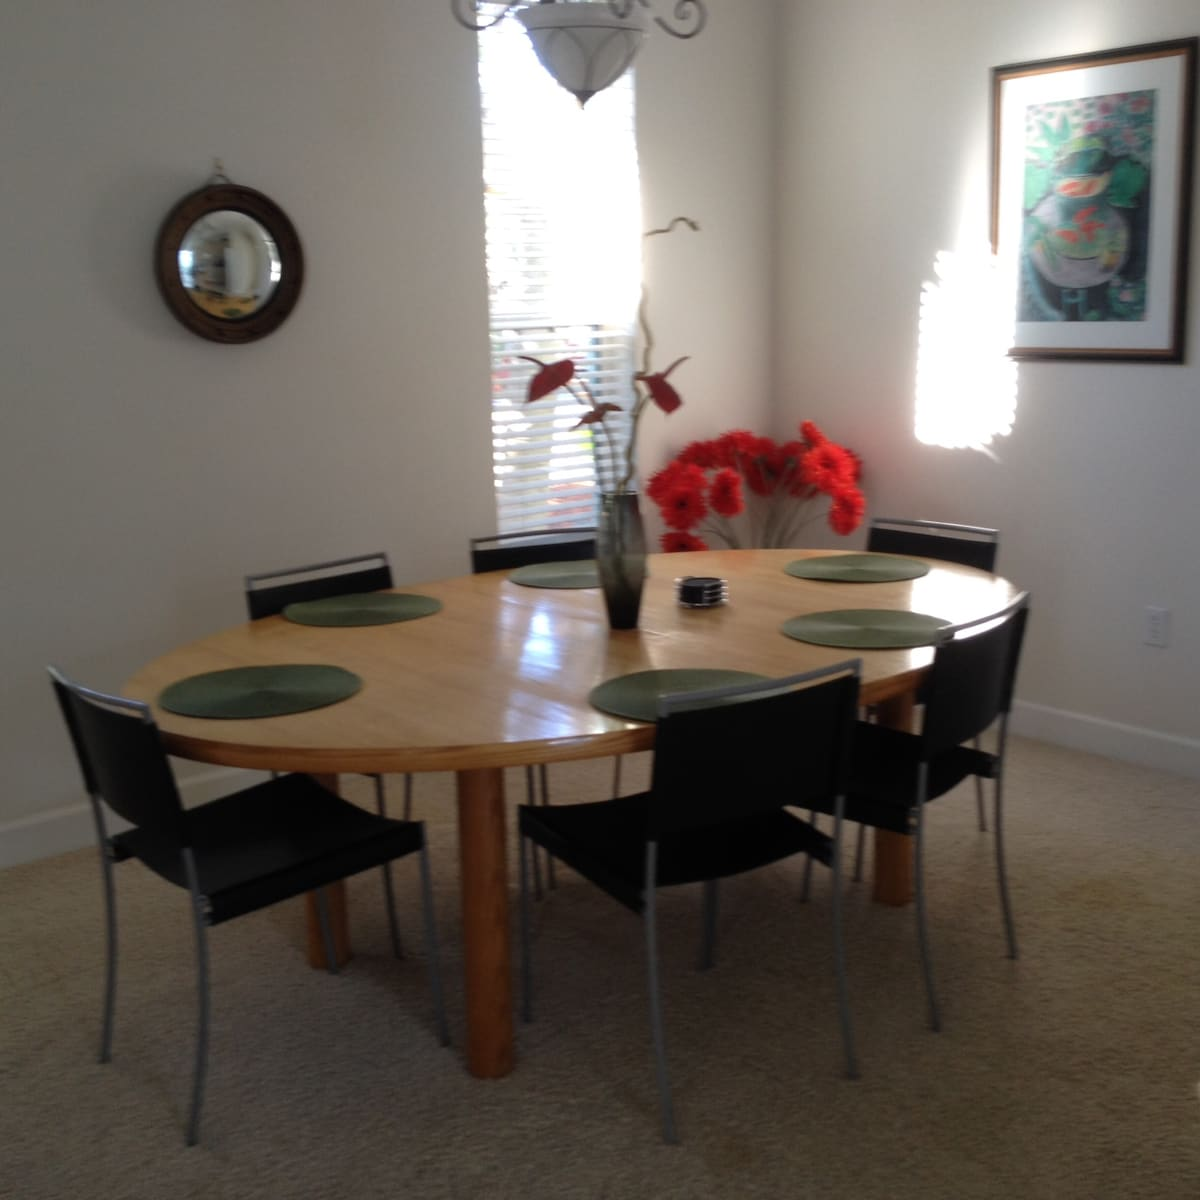 Large dining table seats six or more